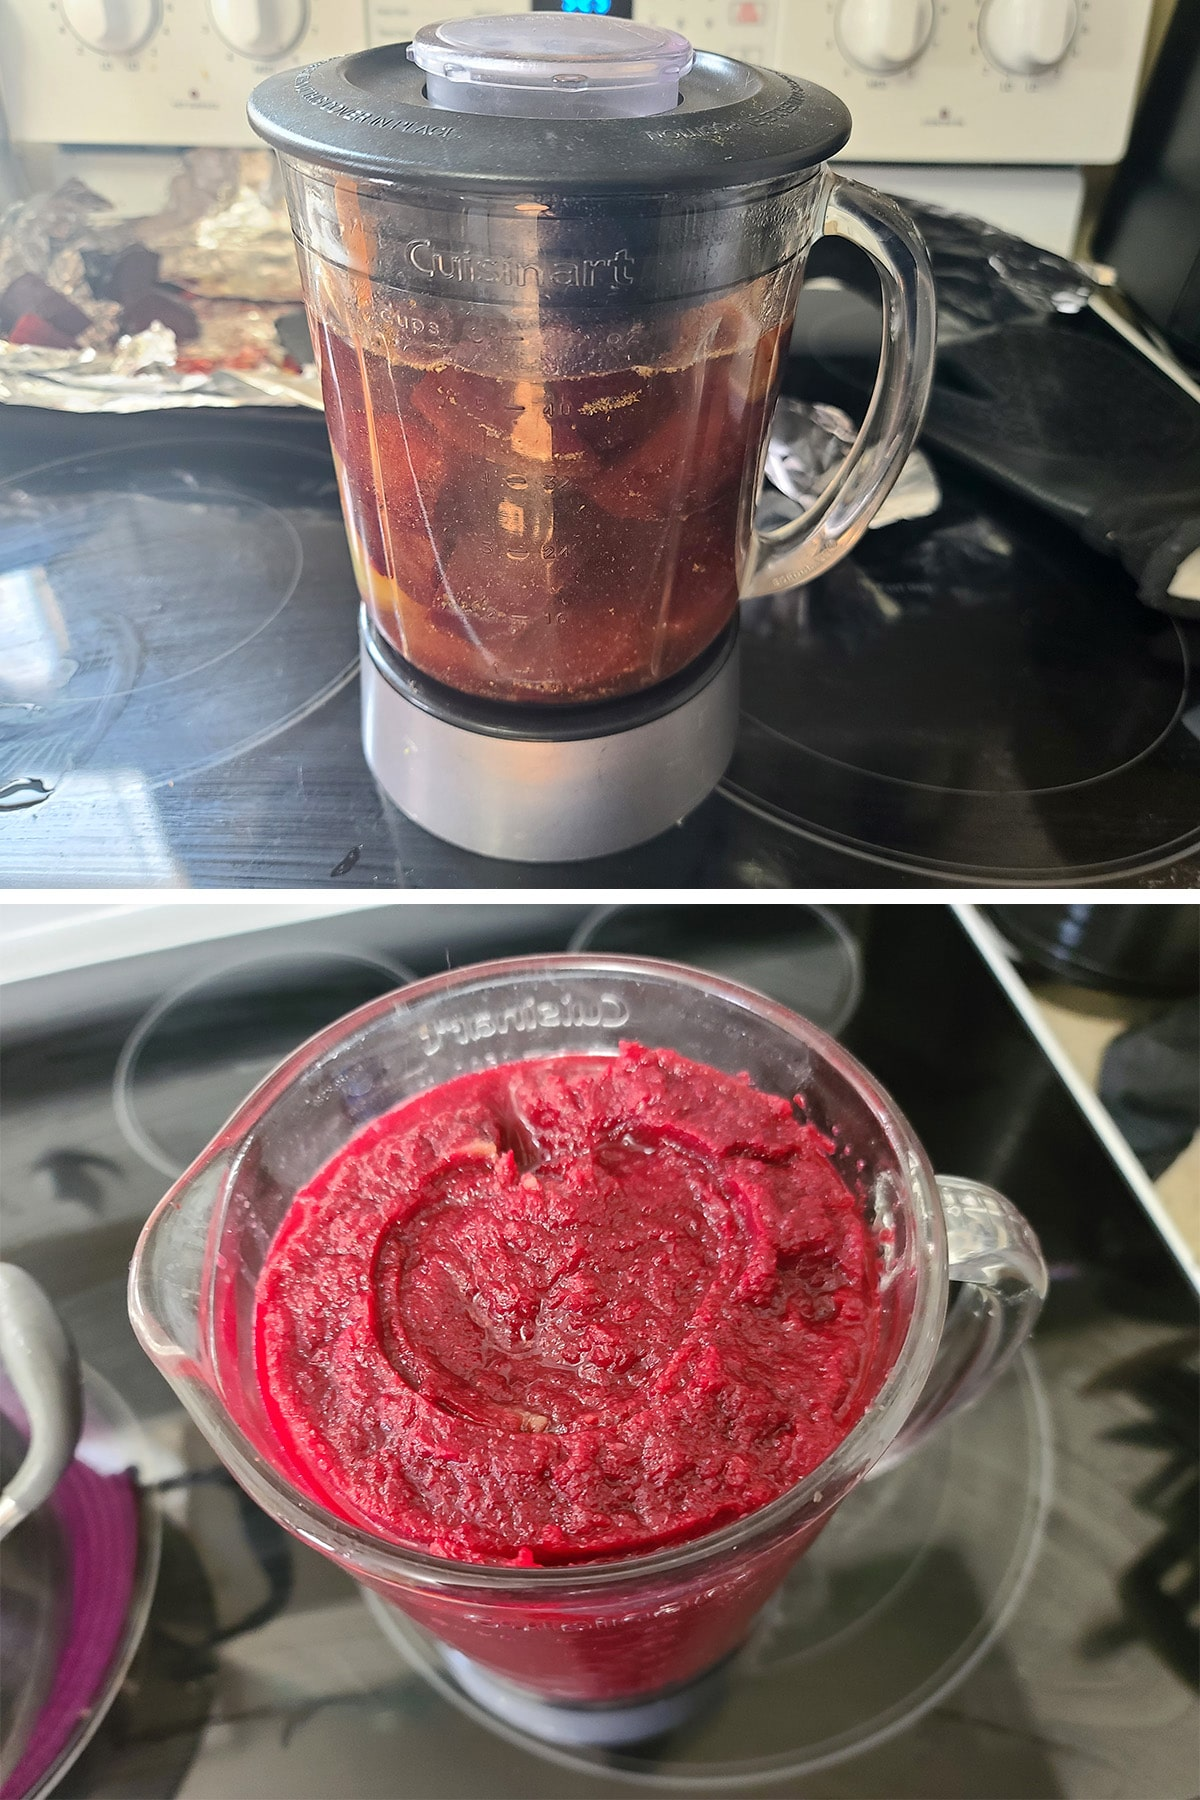 All of the ingredients in a blender, before and after blending.